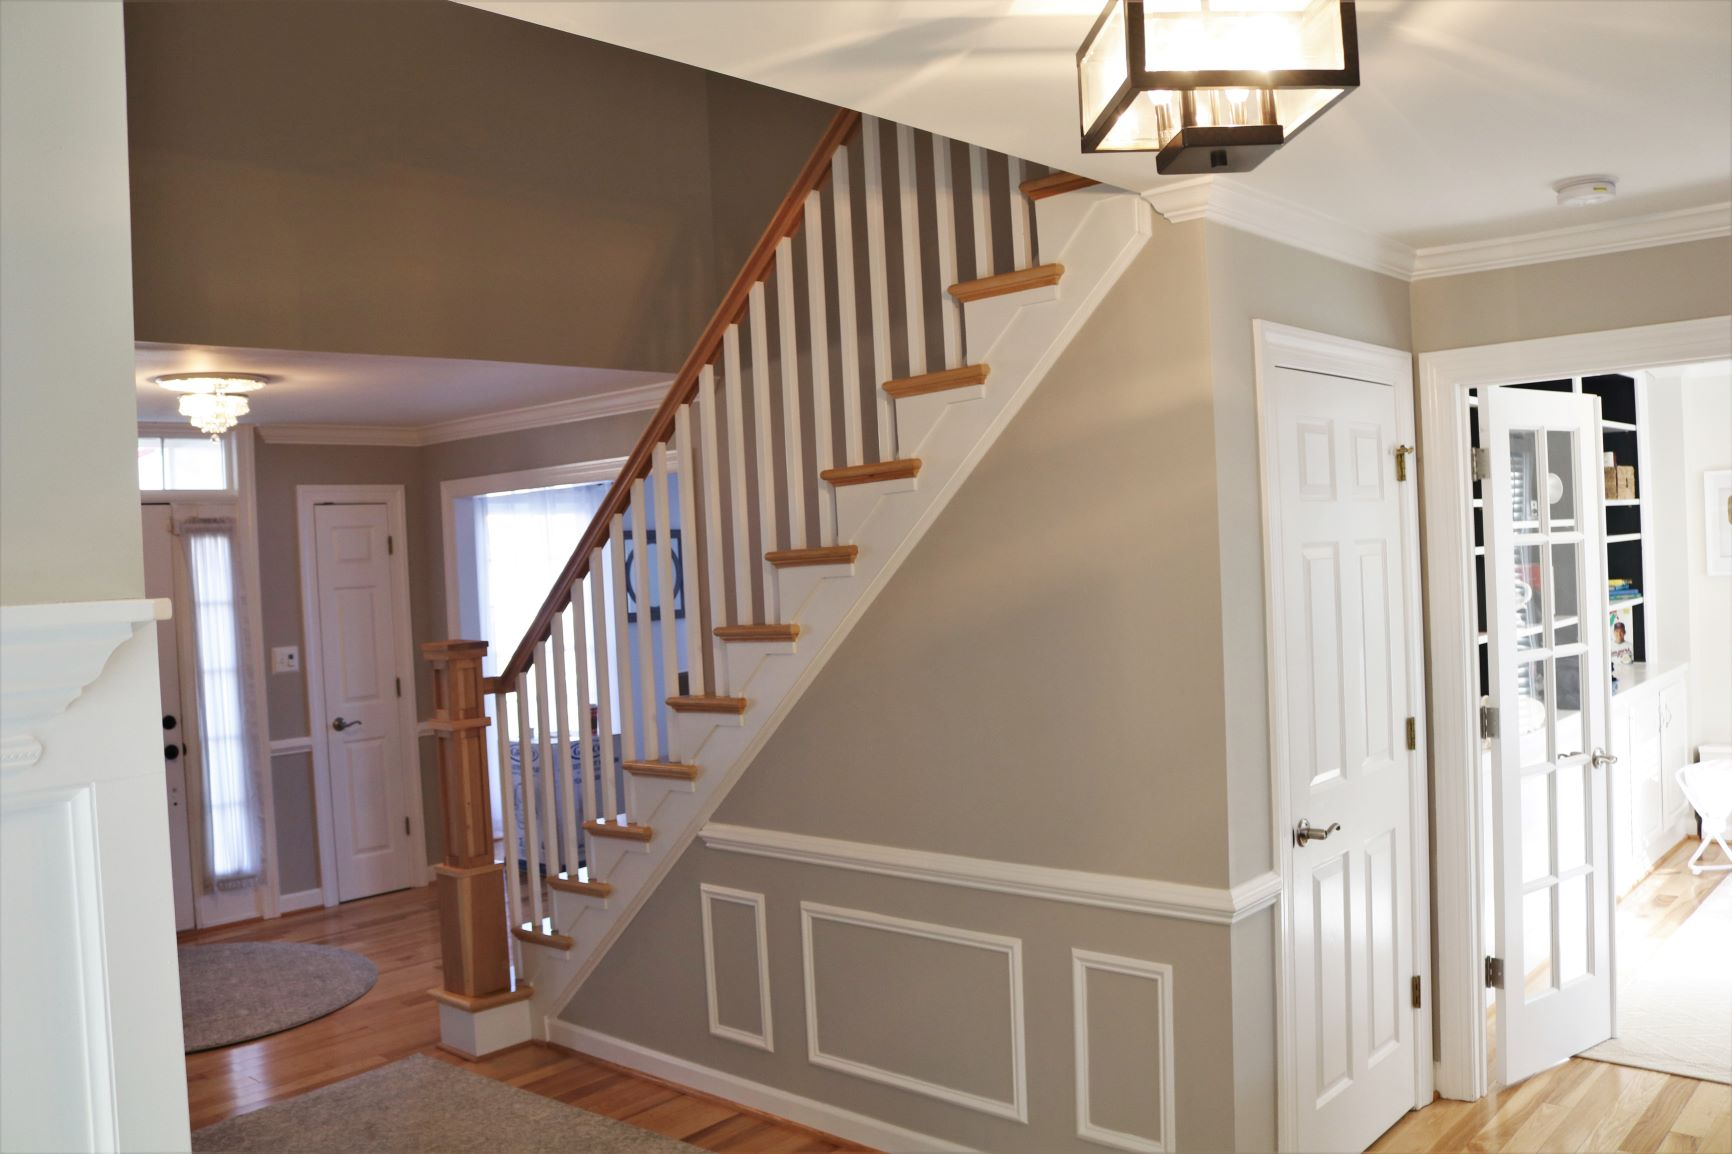 HickoryStairs-Full Remodel-ArlingtonVA-6